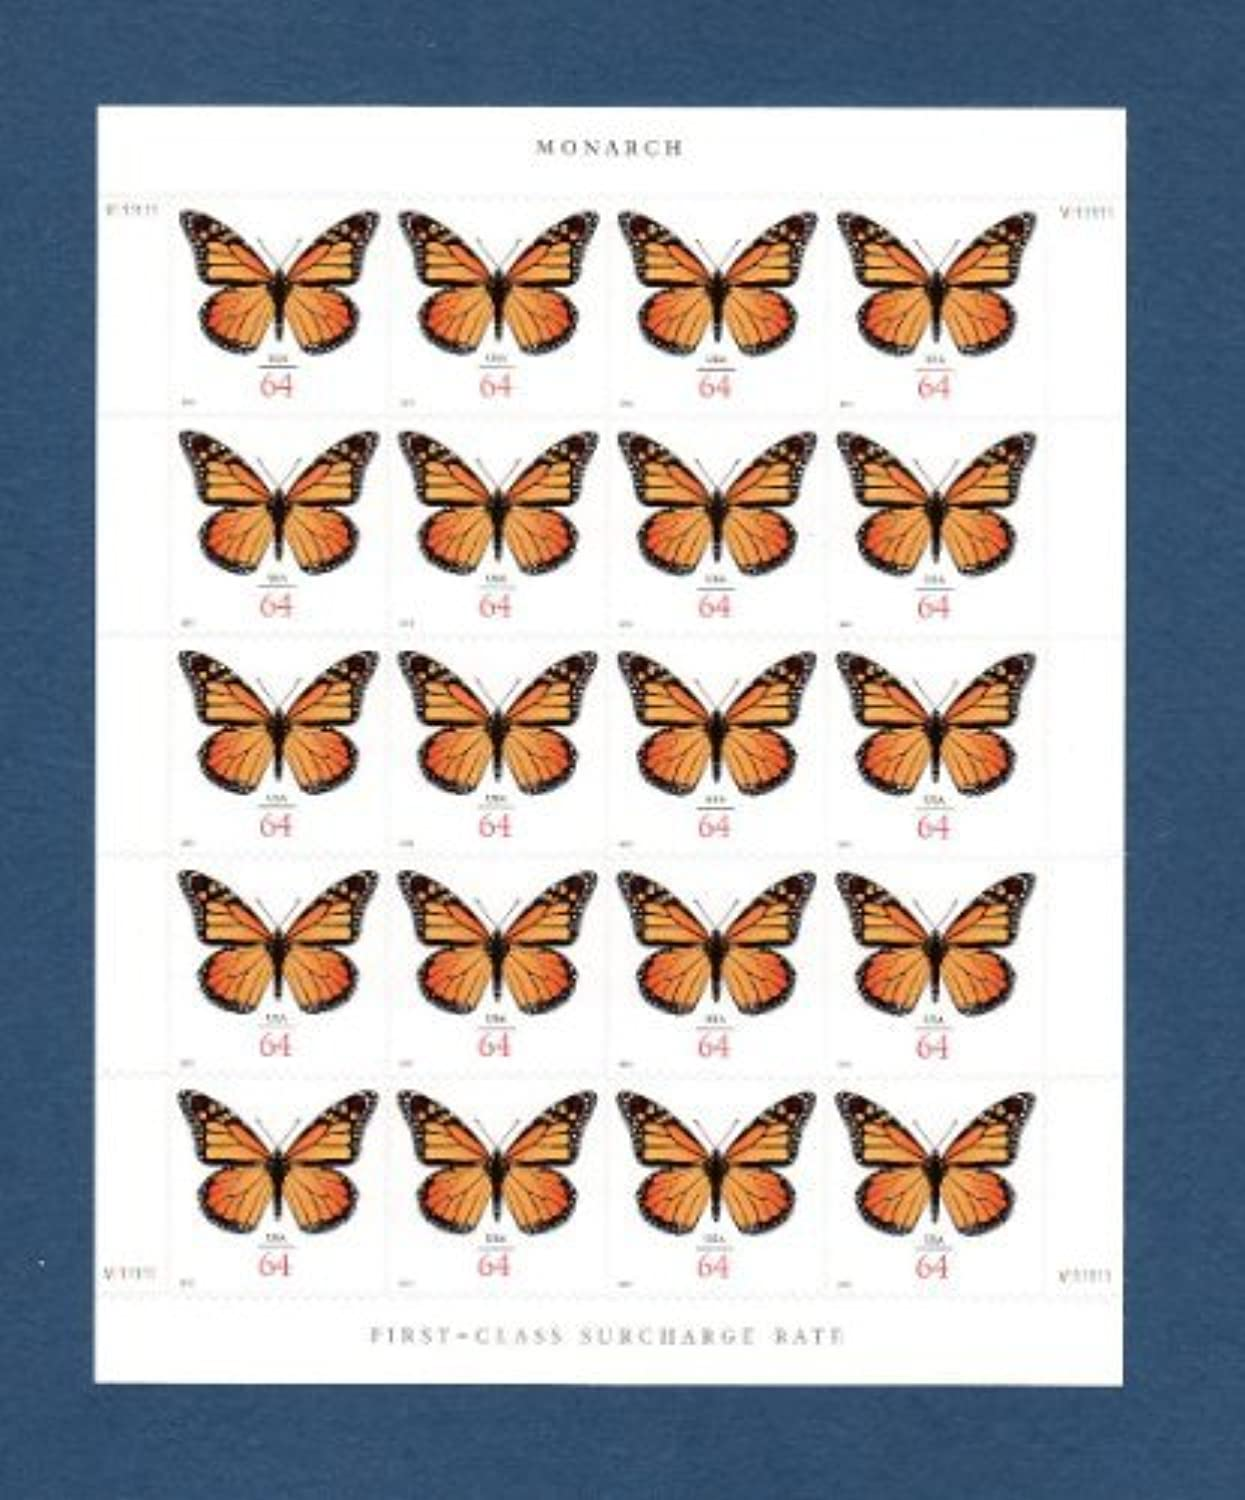 Monarch Butterfly Sheet of Twenty 64 Cent Stamps Scott 4462 by USPS